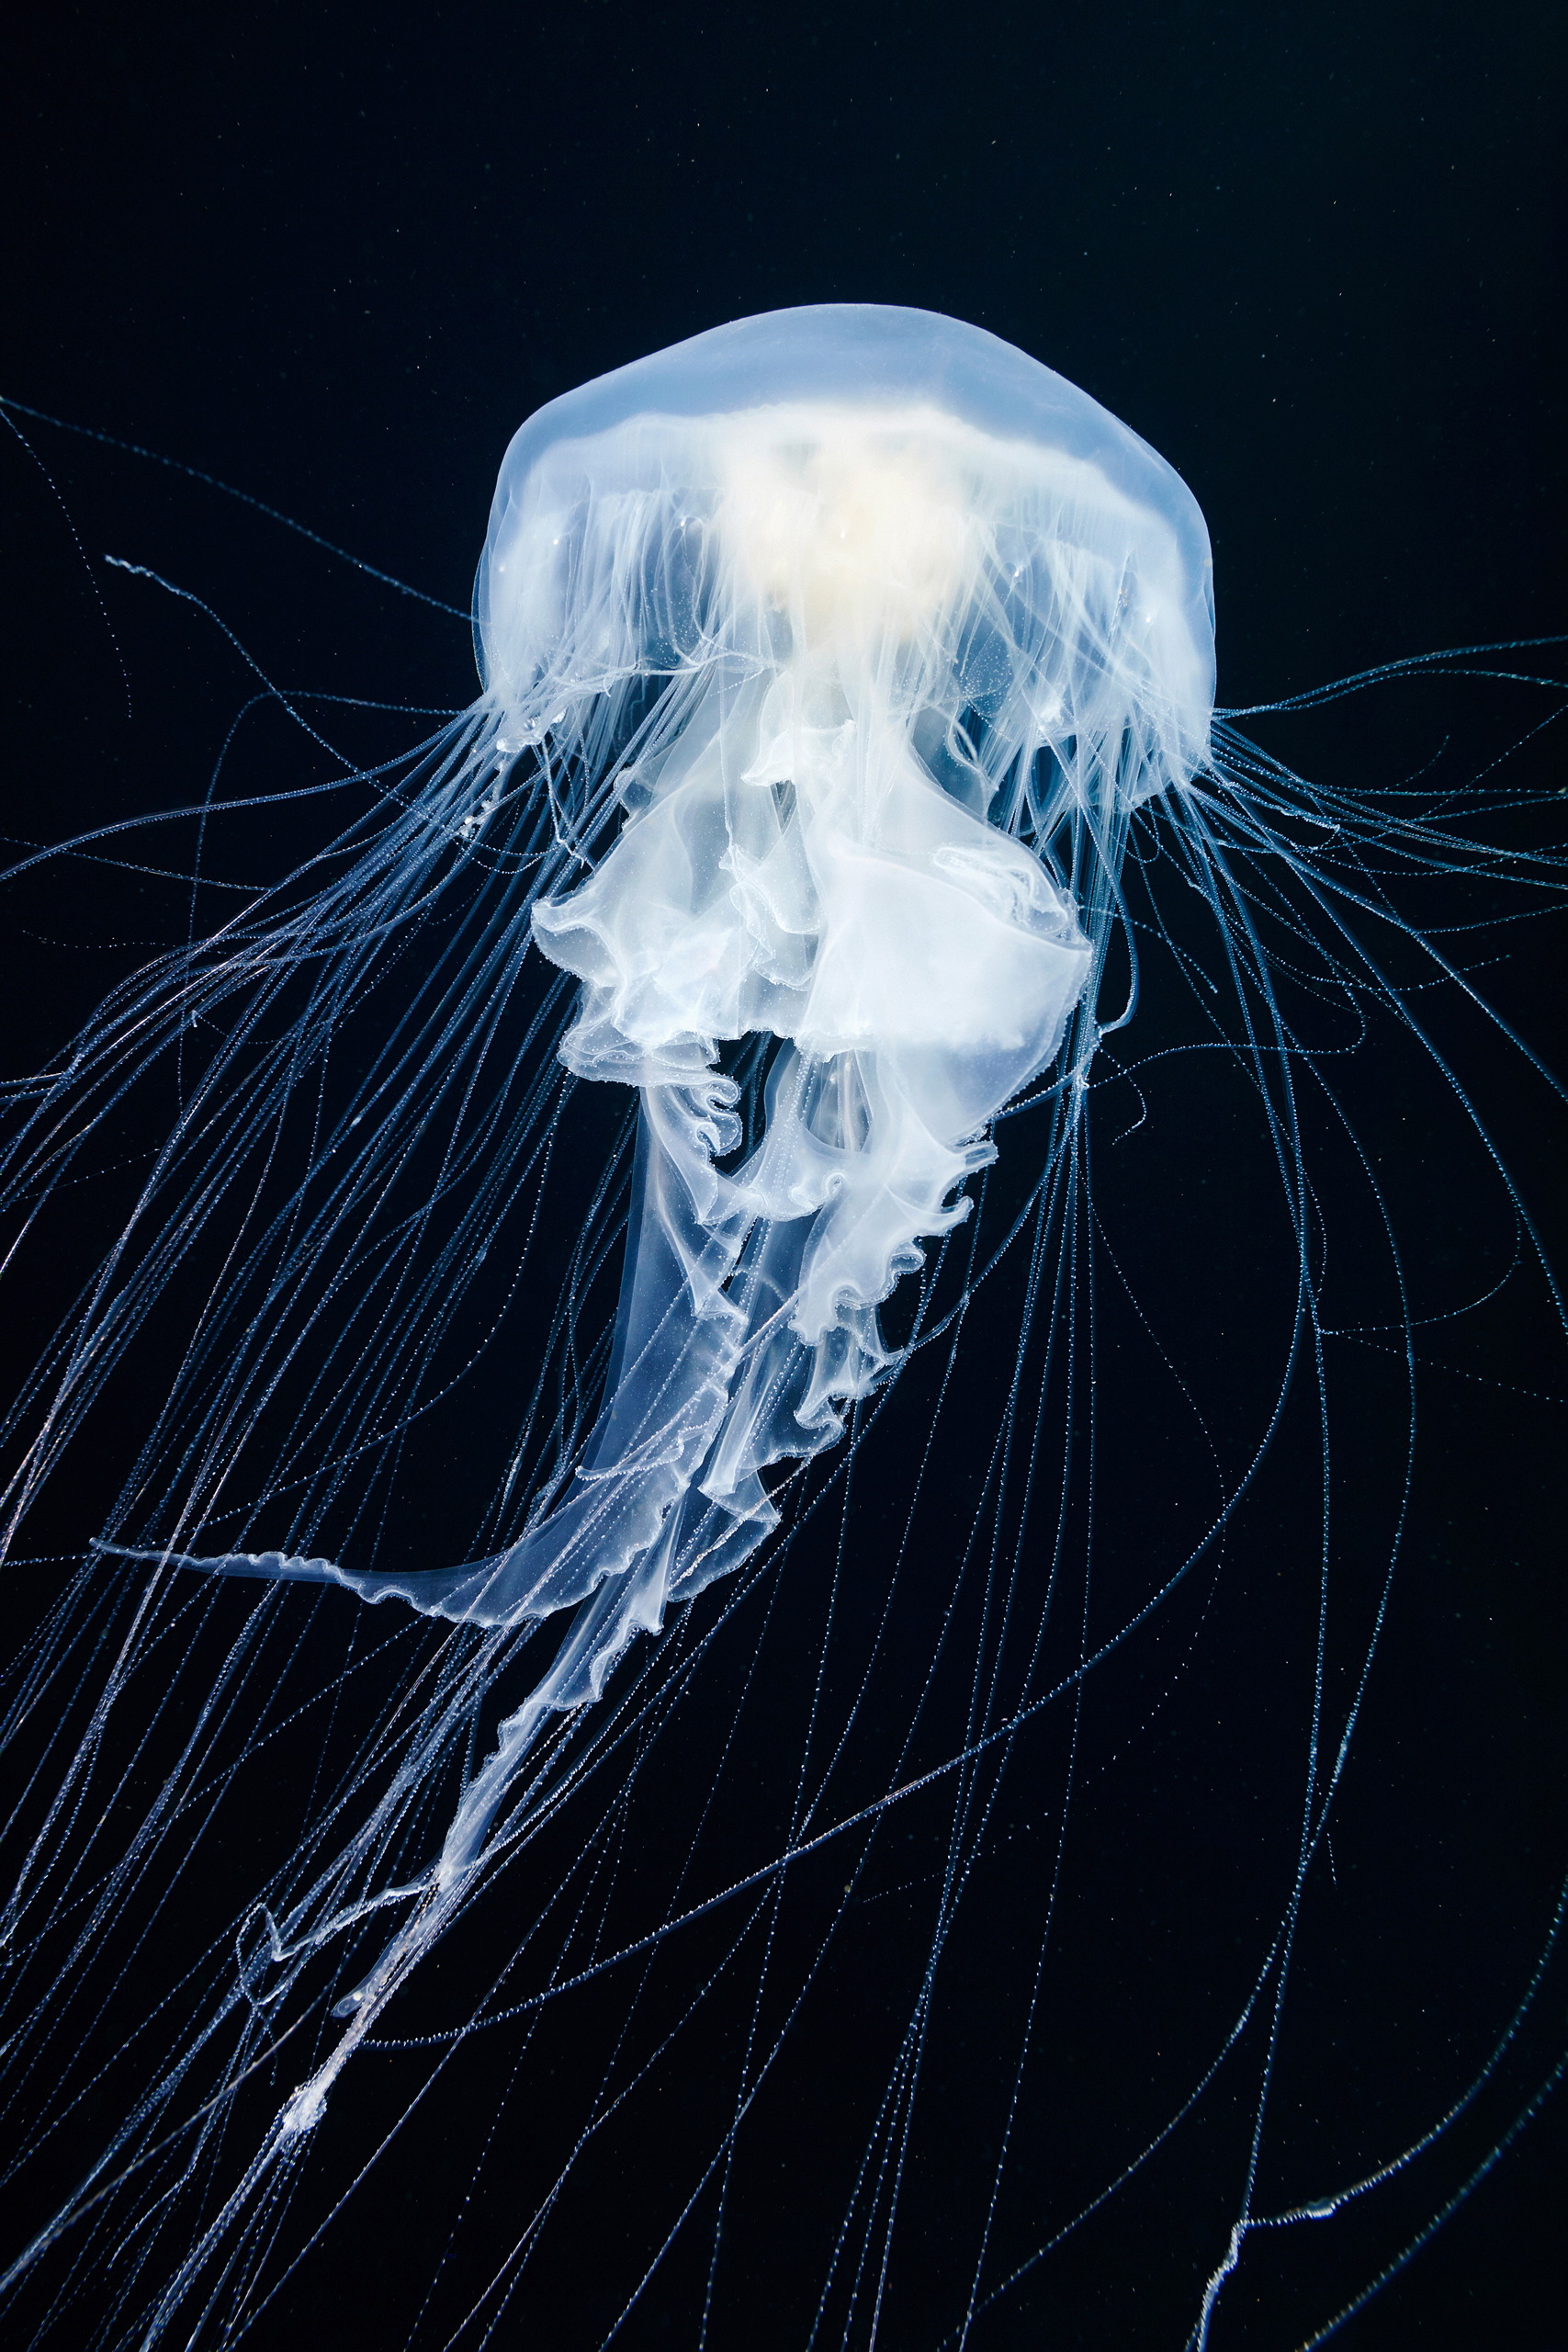 Scyphozoa – Unidentified jellyfish